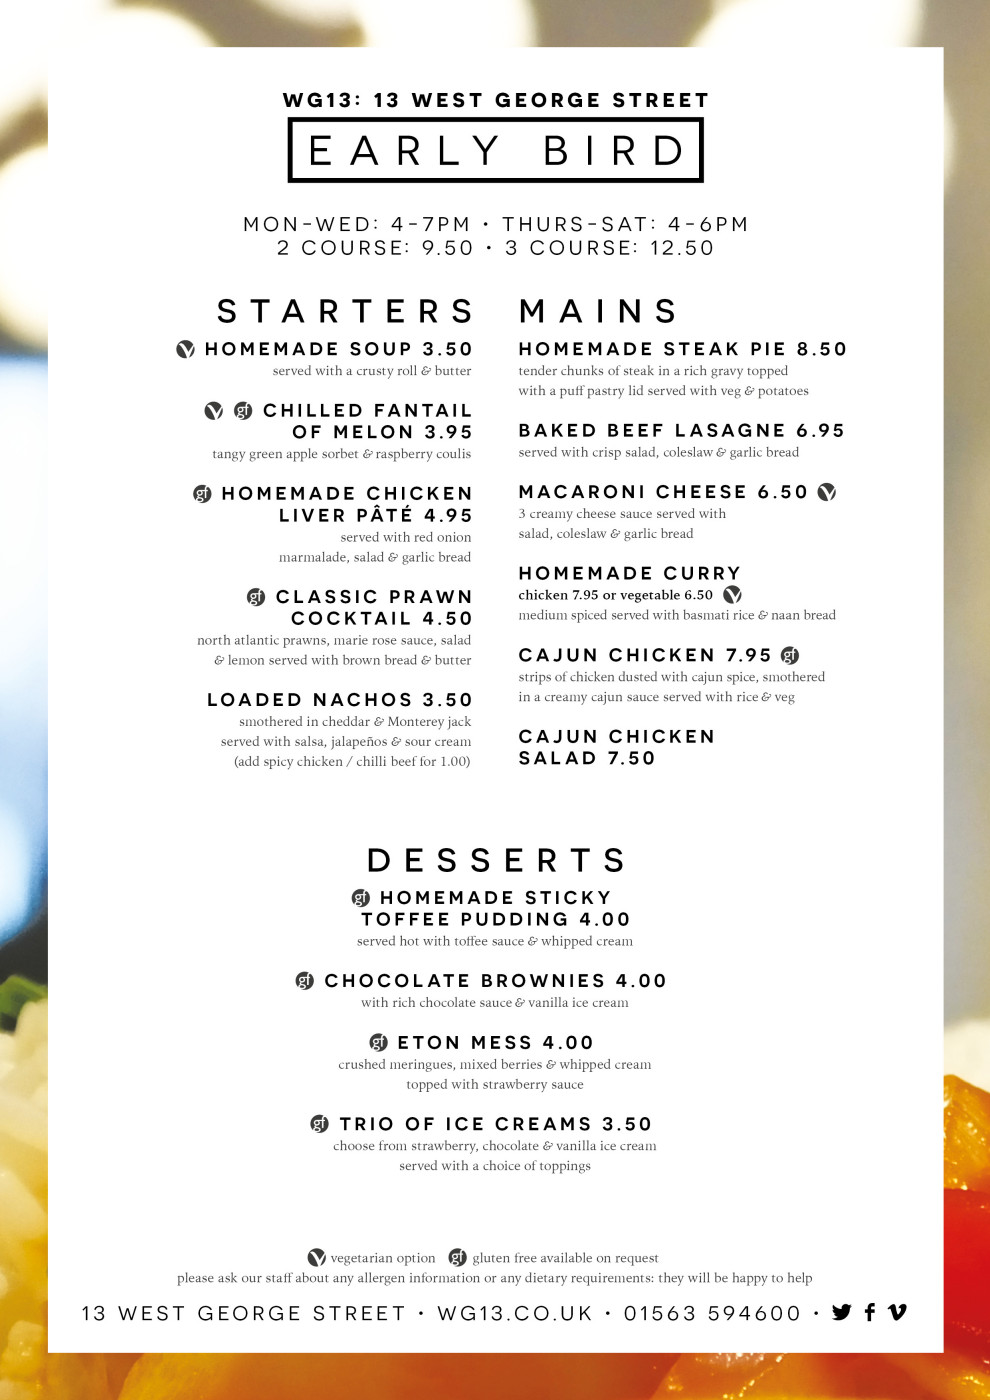 WG13 Early Bird Menu